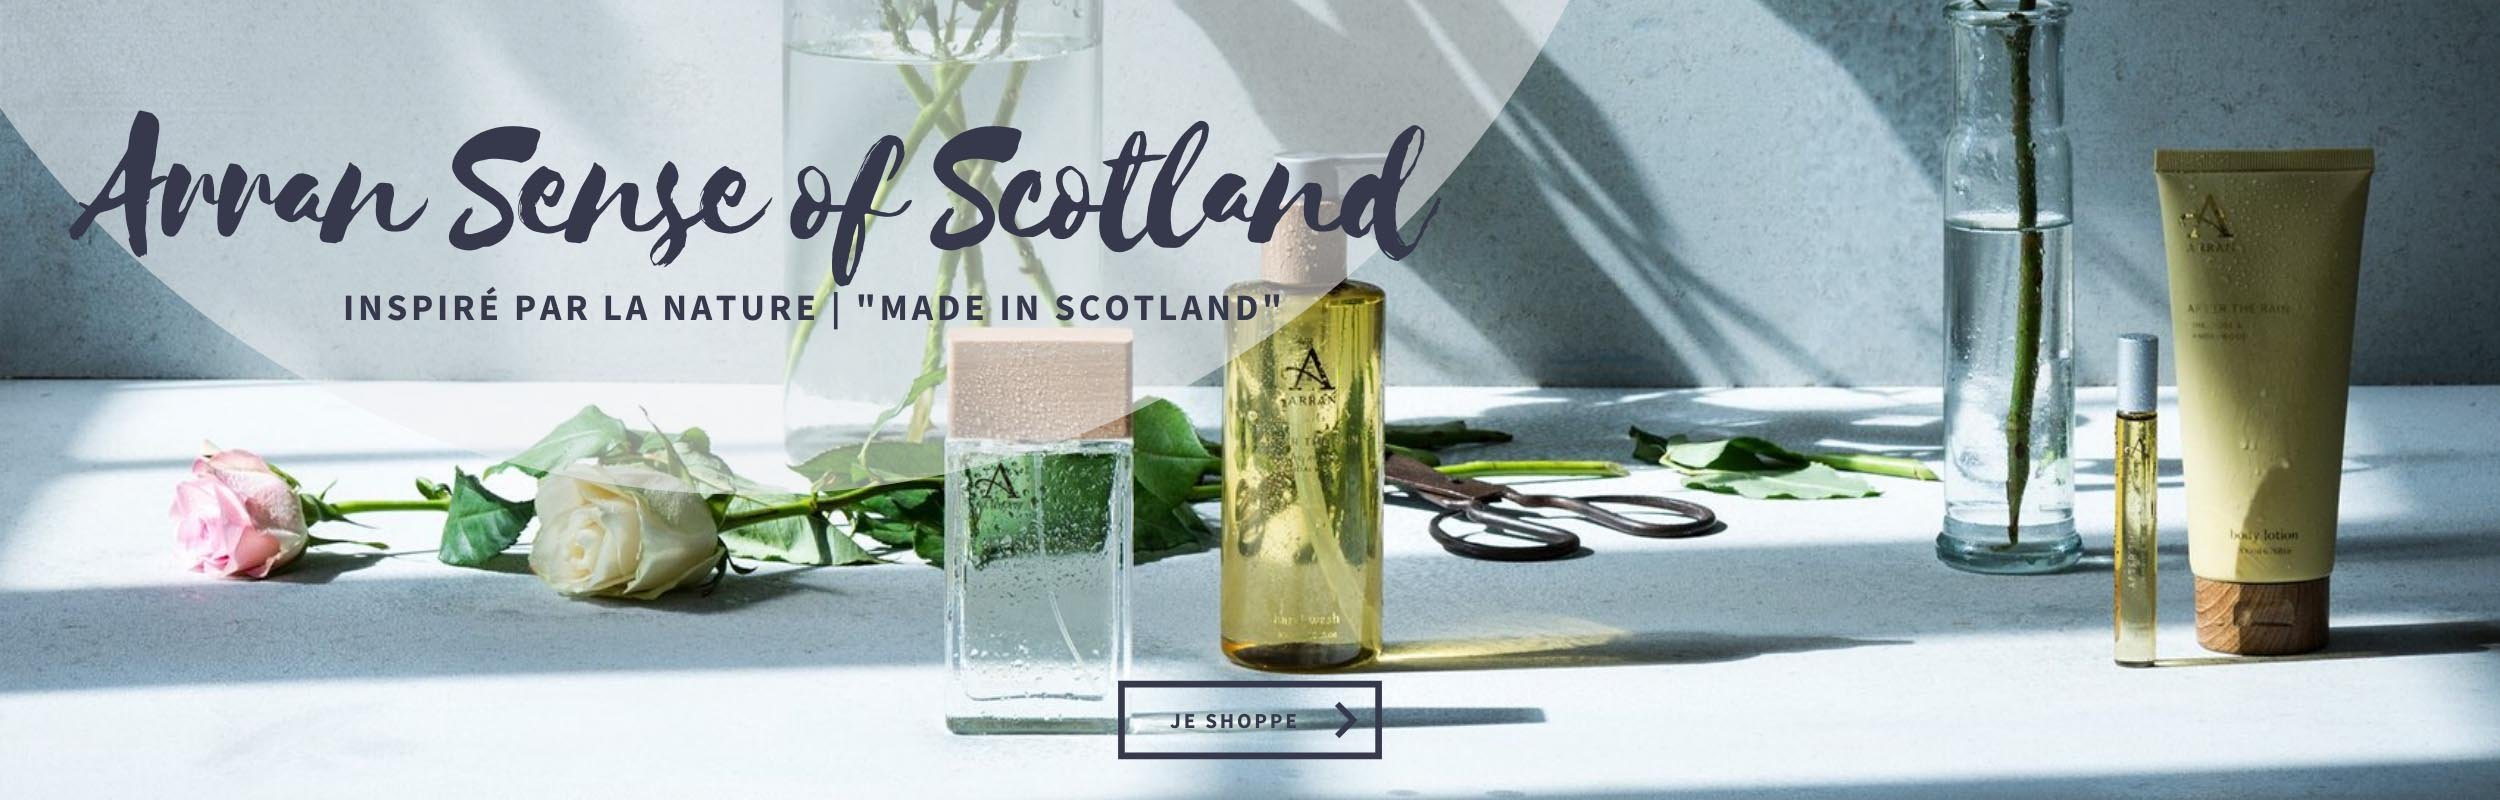 Arran Sense of Scotland sur Feel British la boutique Beauté très British